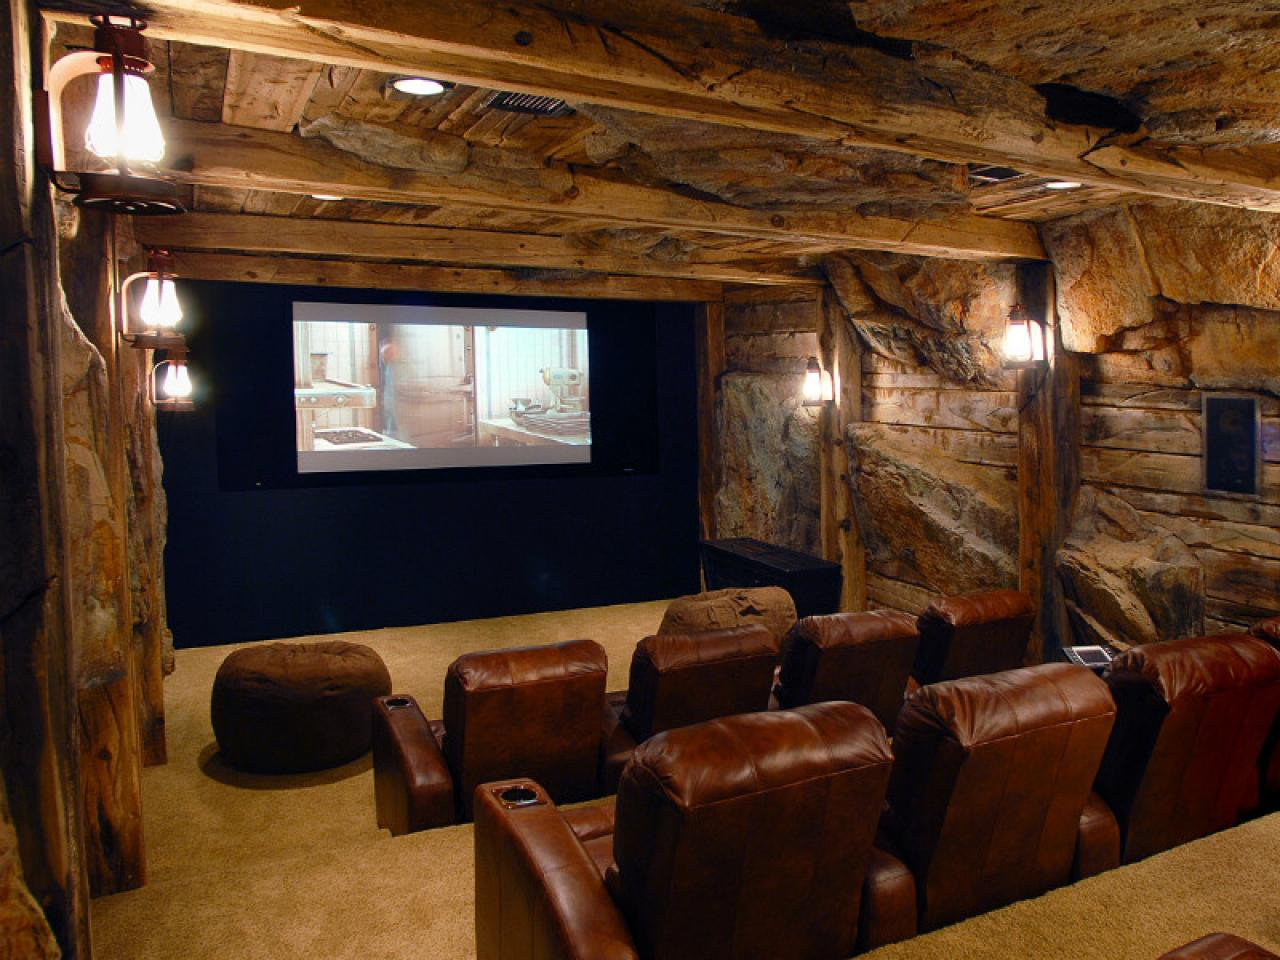 themed-home-theaters-8-mine-shaft-home-theater.jpg.rend.hgtvcom.1280.960